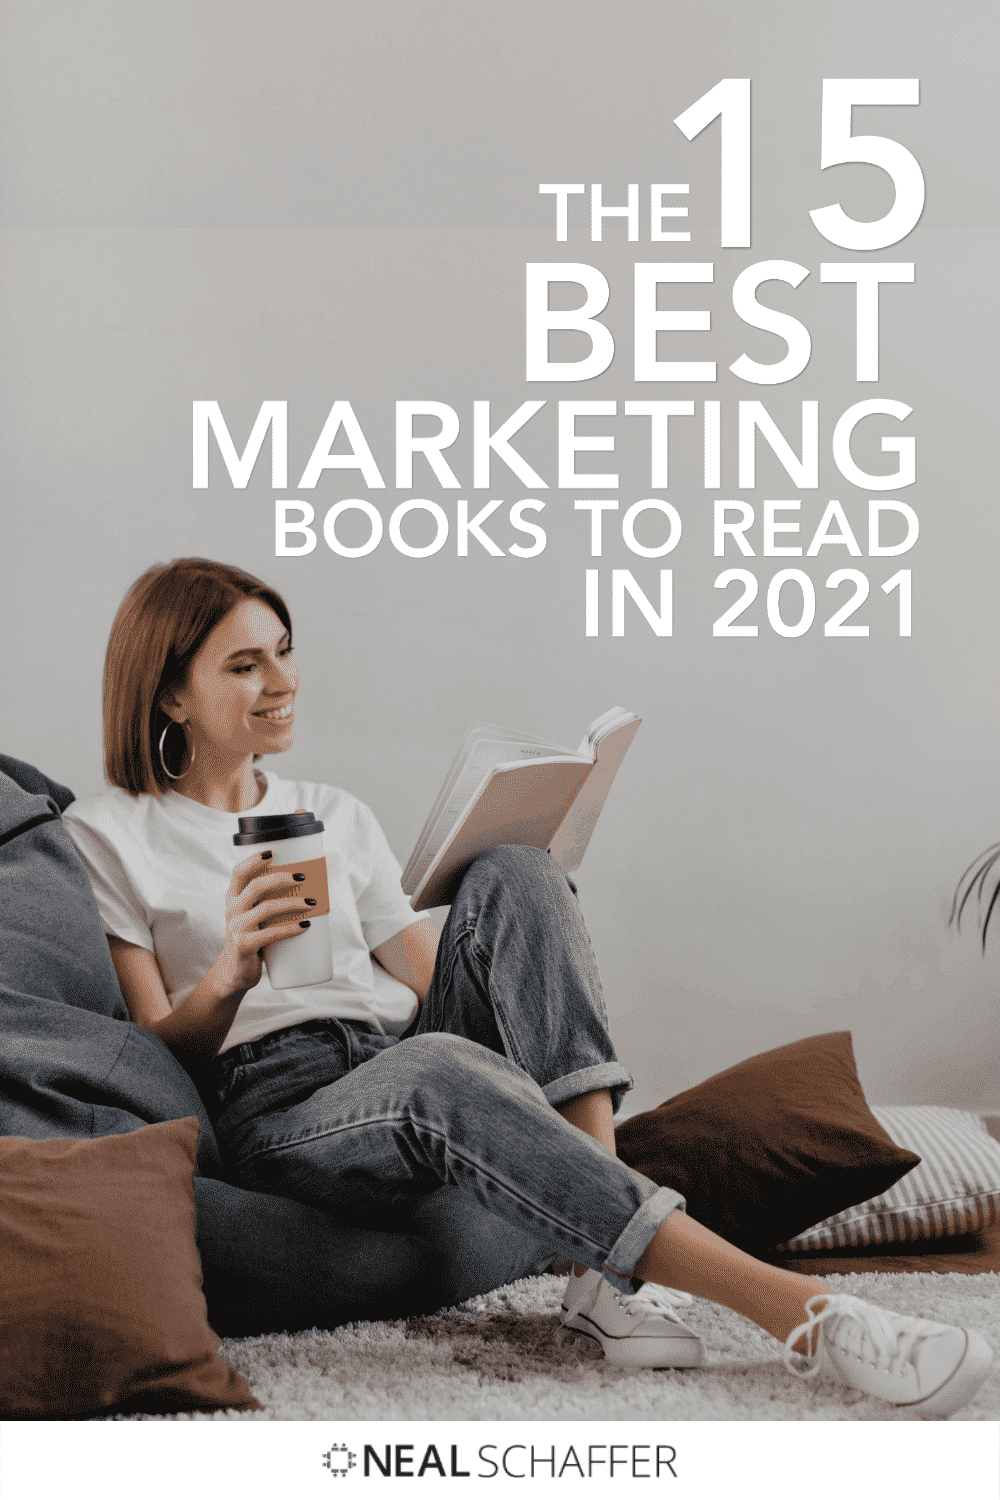 Looking to stay ahead of your competition? These are the 15 best marketing books you should be reading in 2021 to learn and implement from.